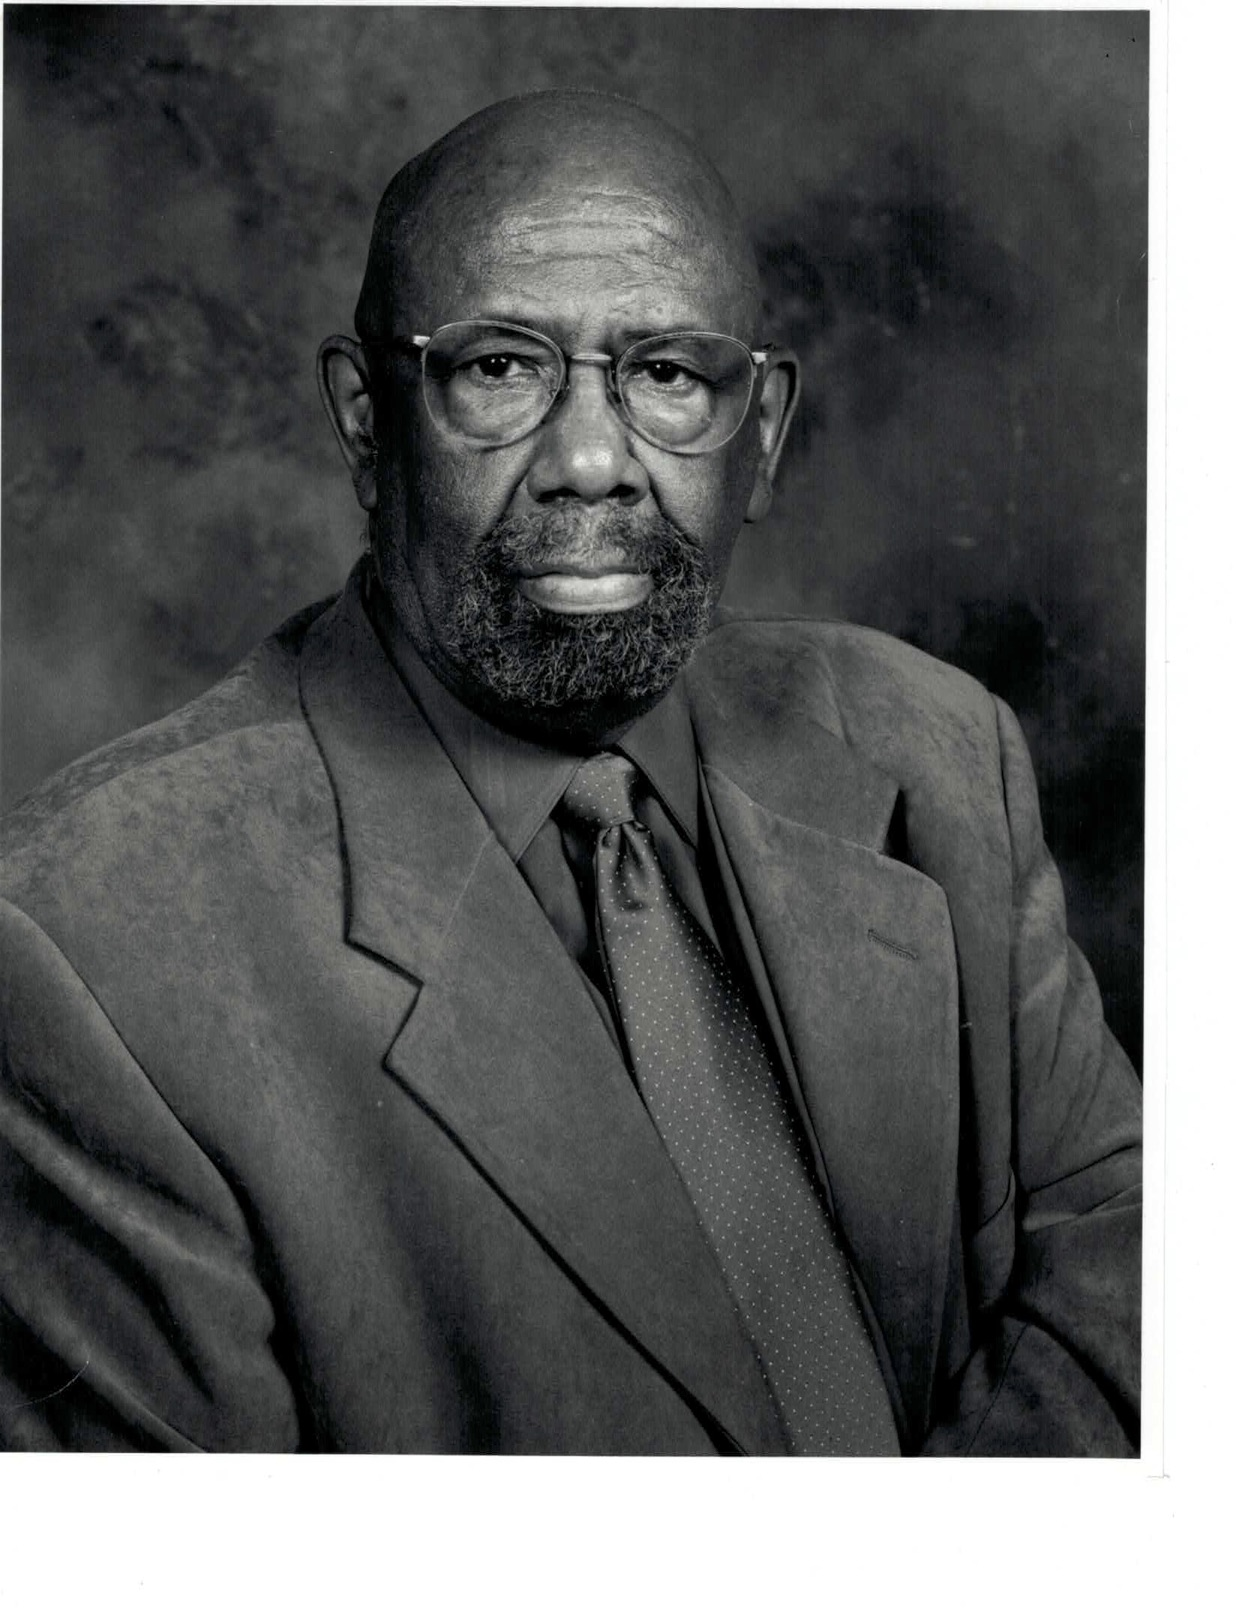 DR. CHARLES RUSSELL 2000-2001